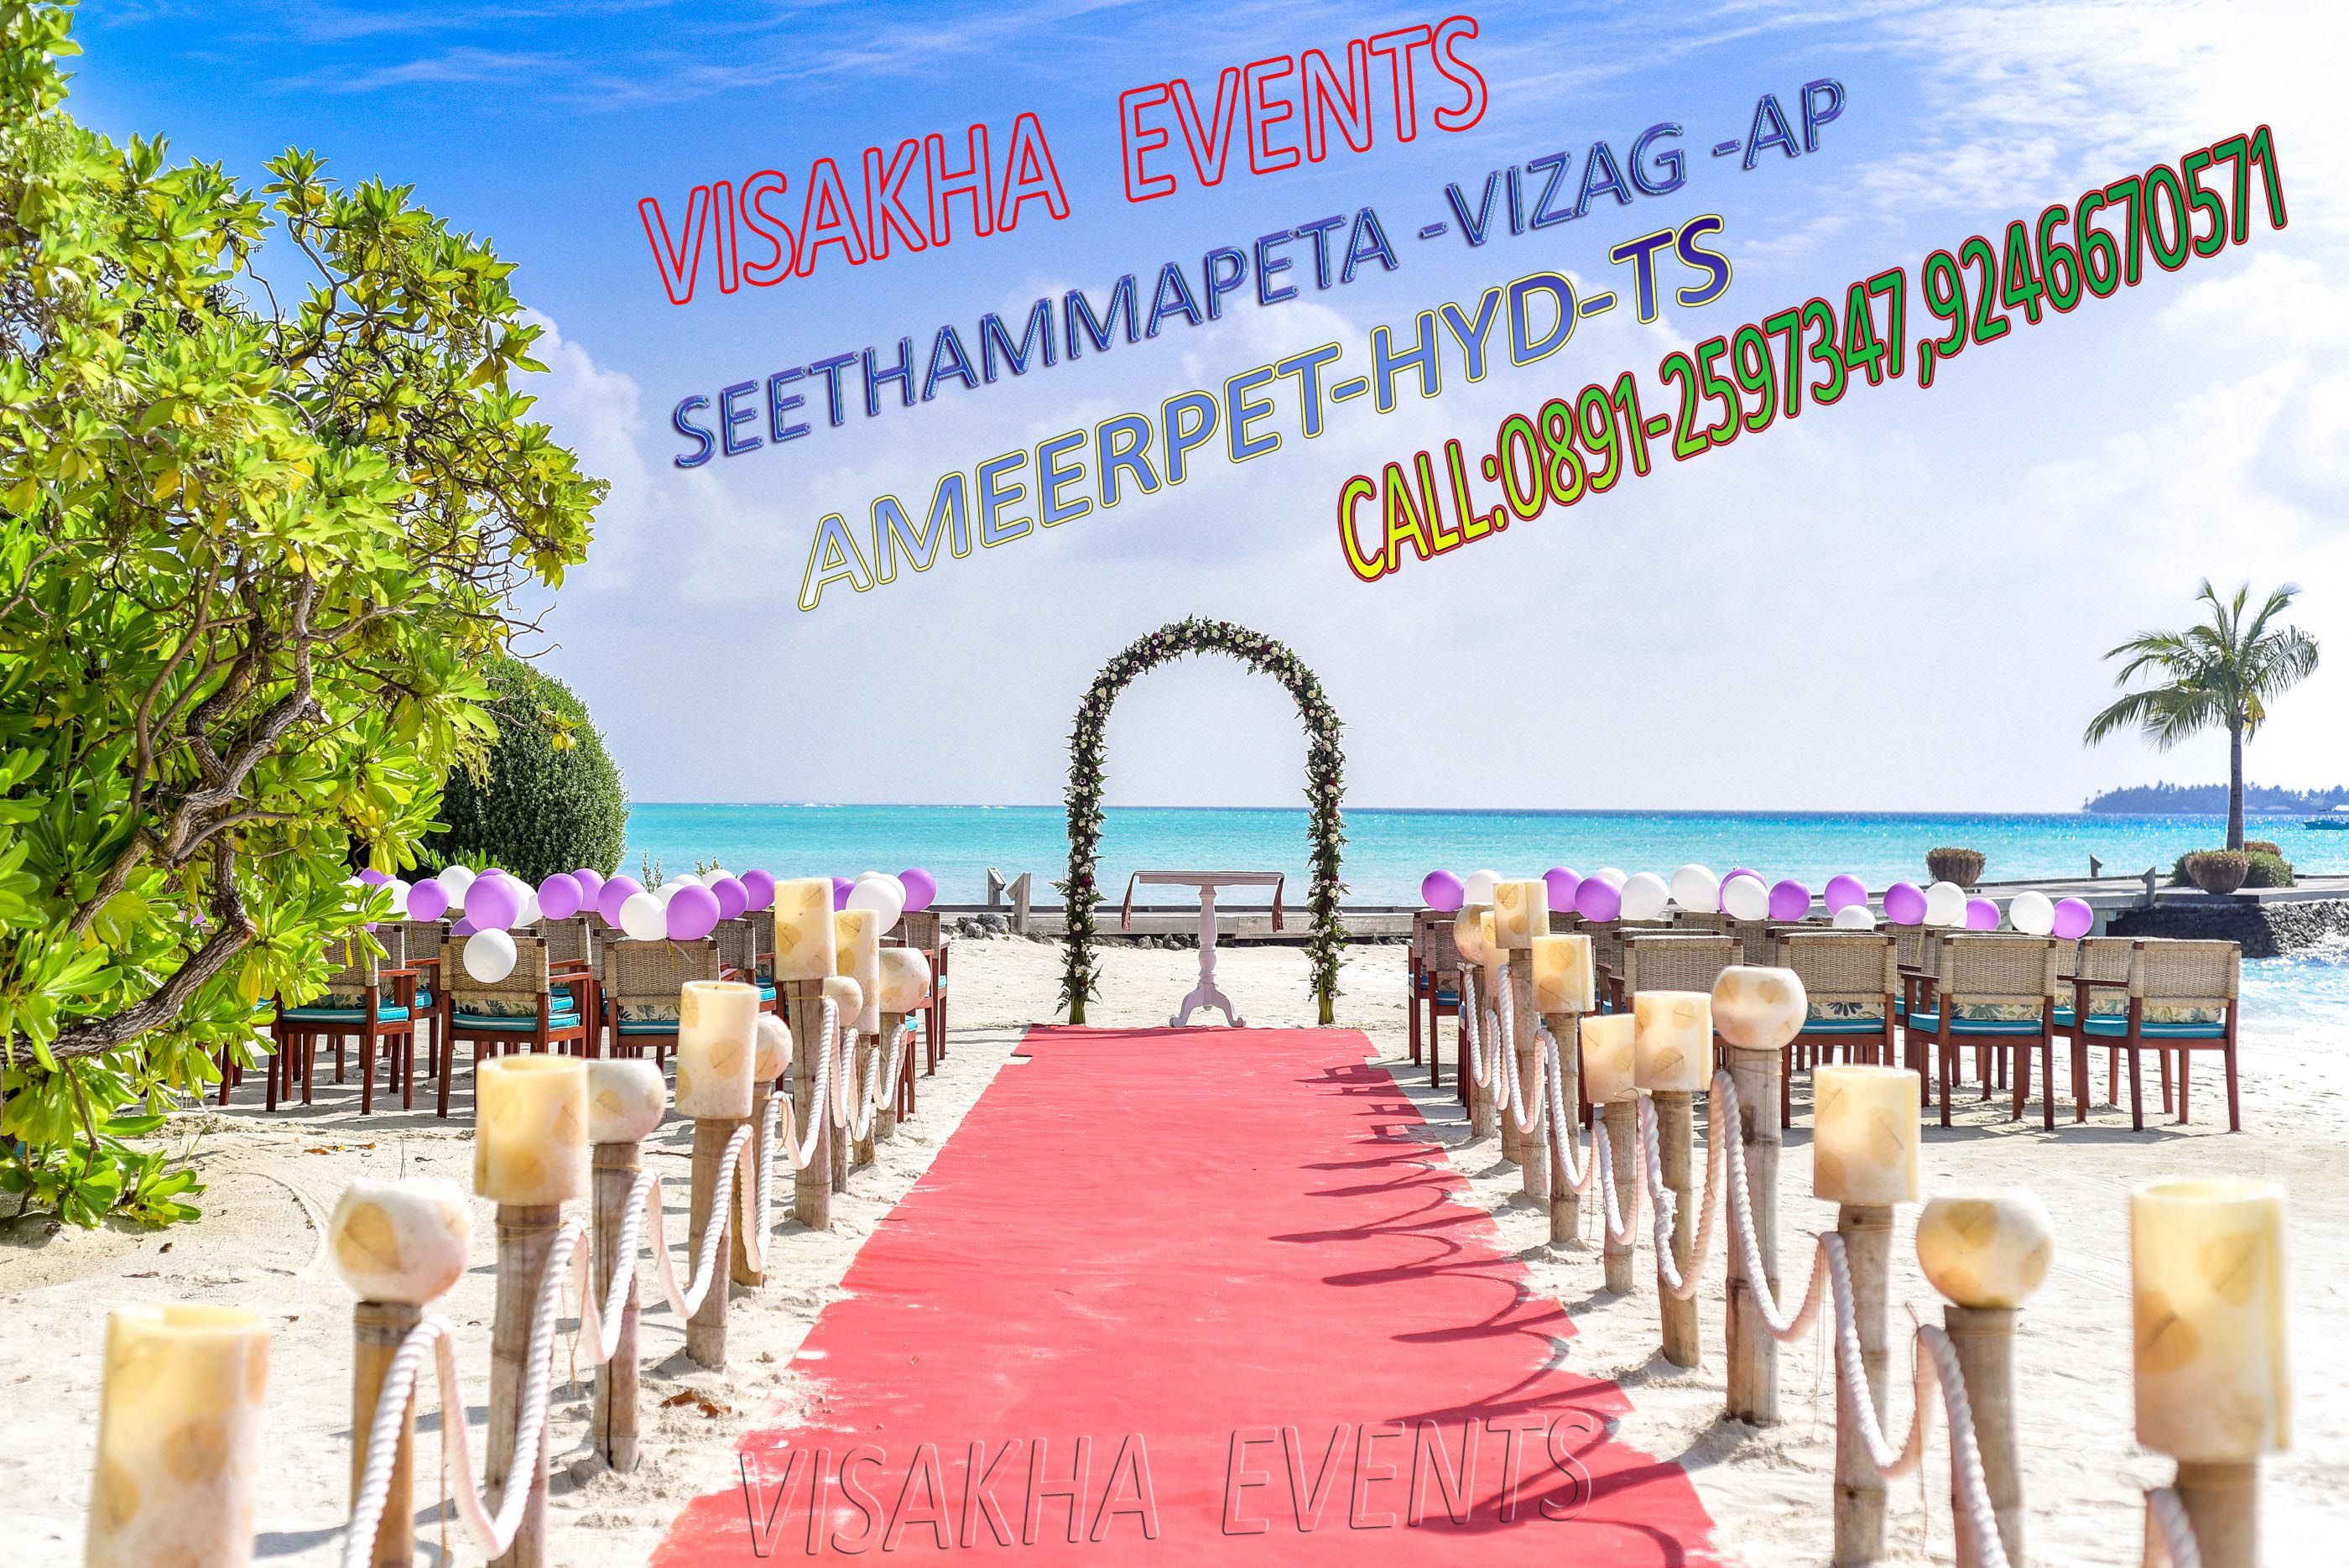 VISAKHA EVENTS